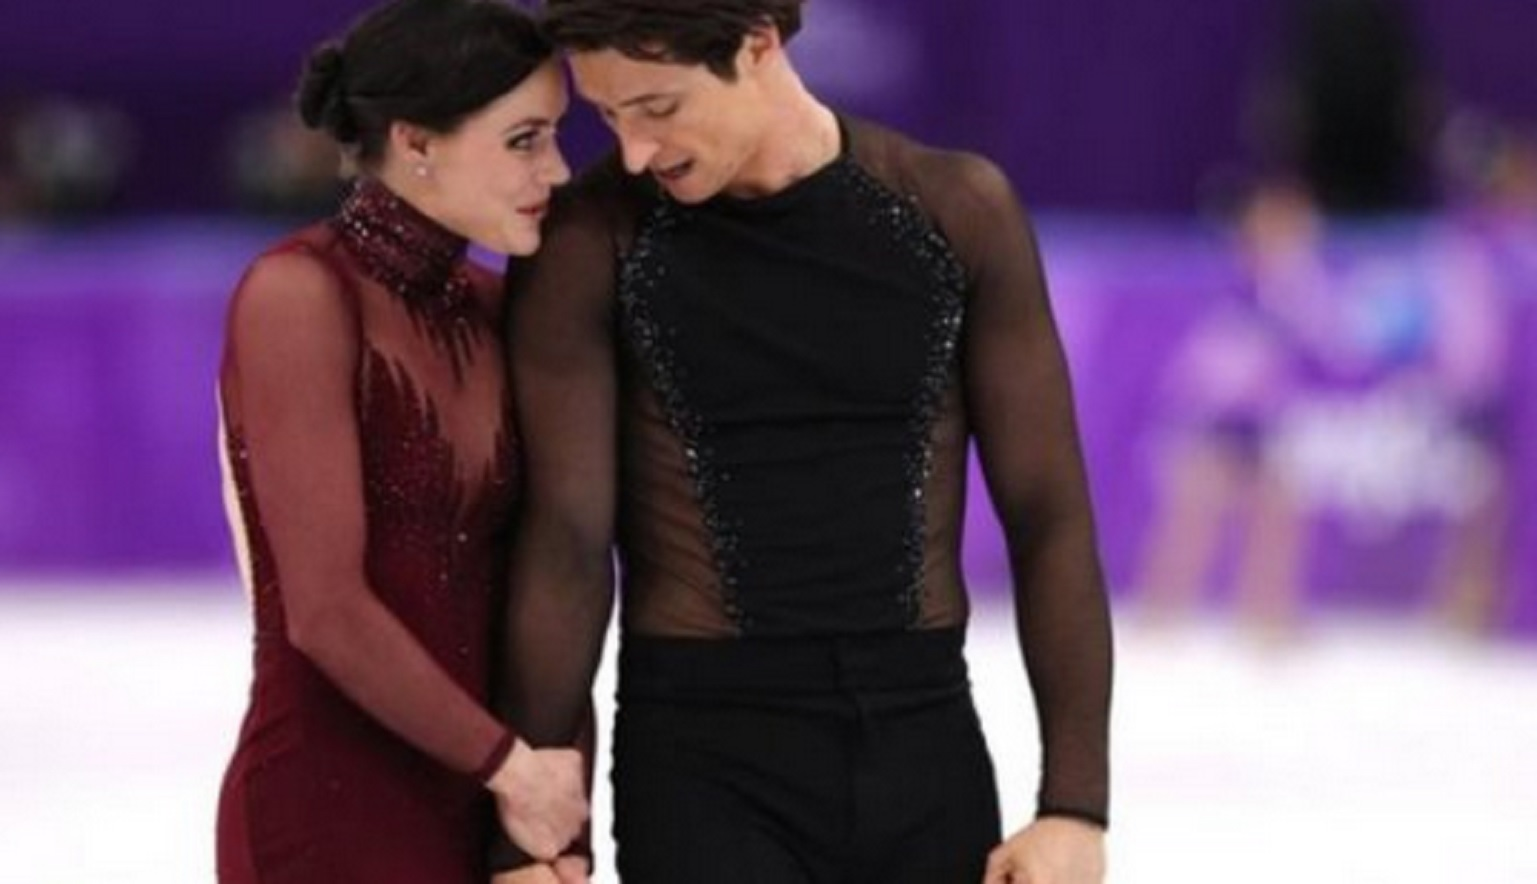 TESSA VIRTUE, SCOTT MOIR 10